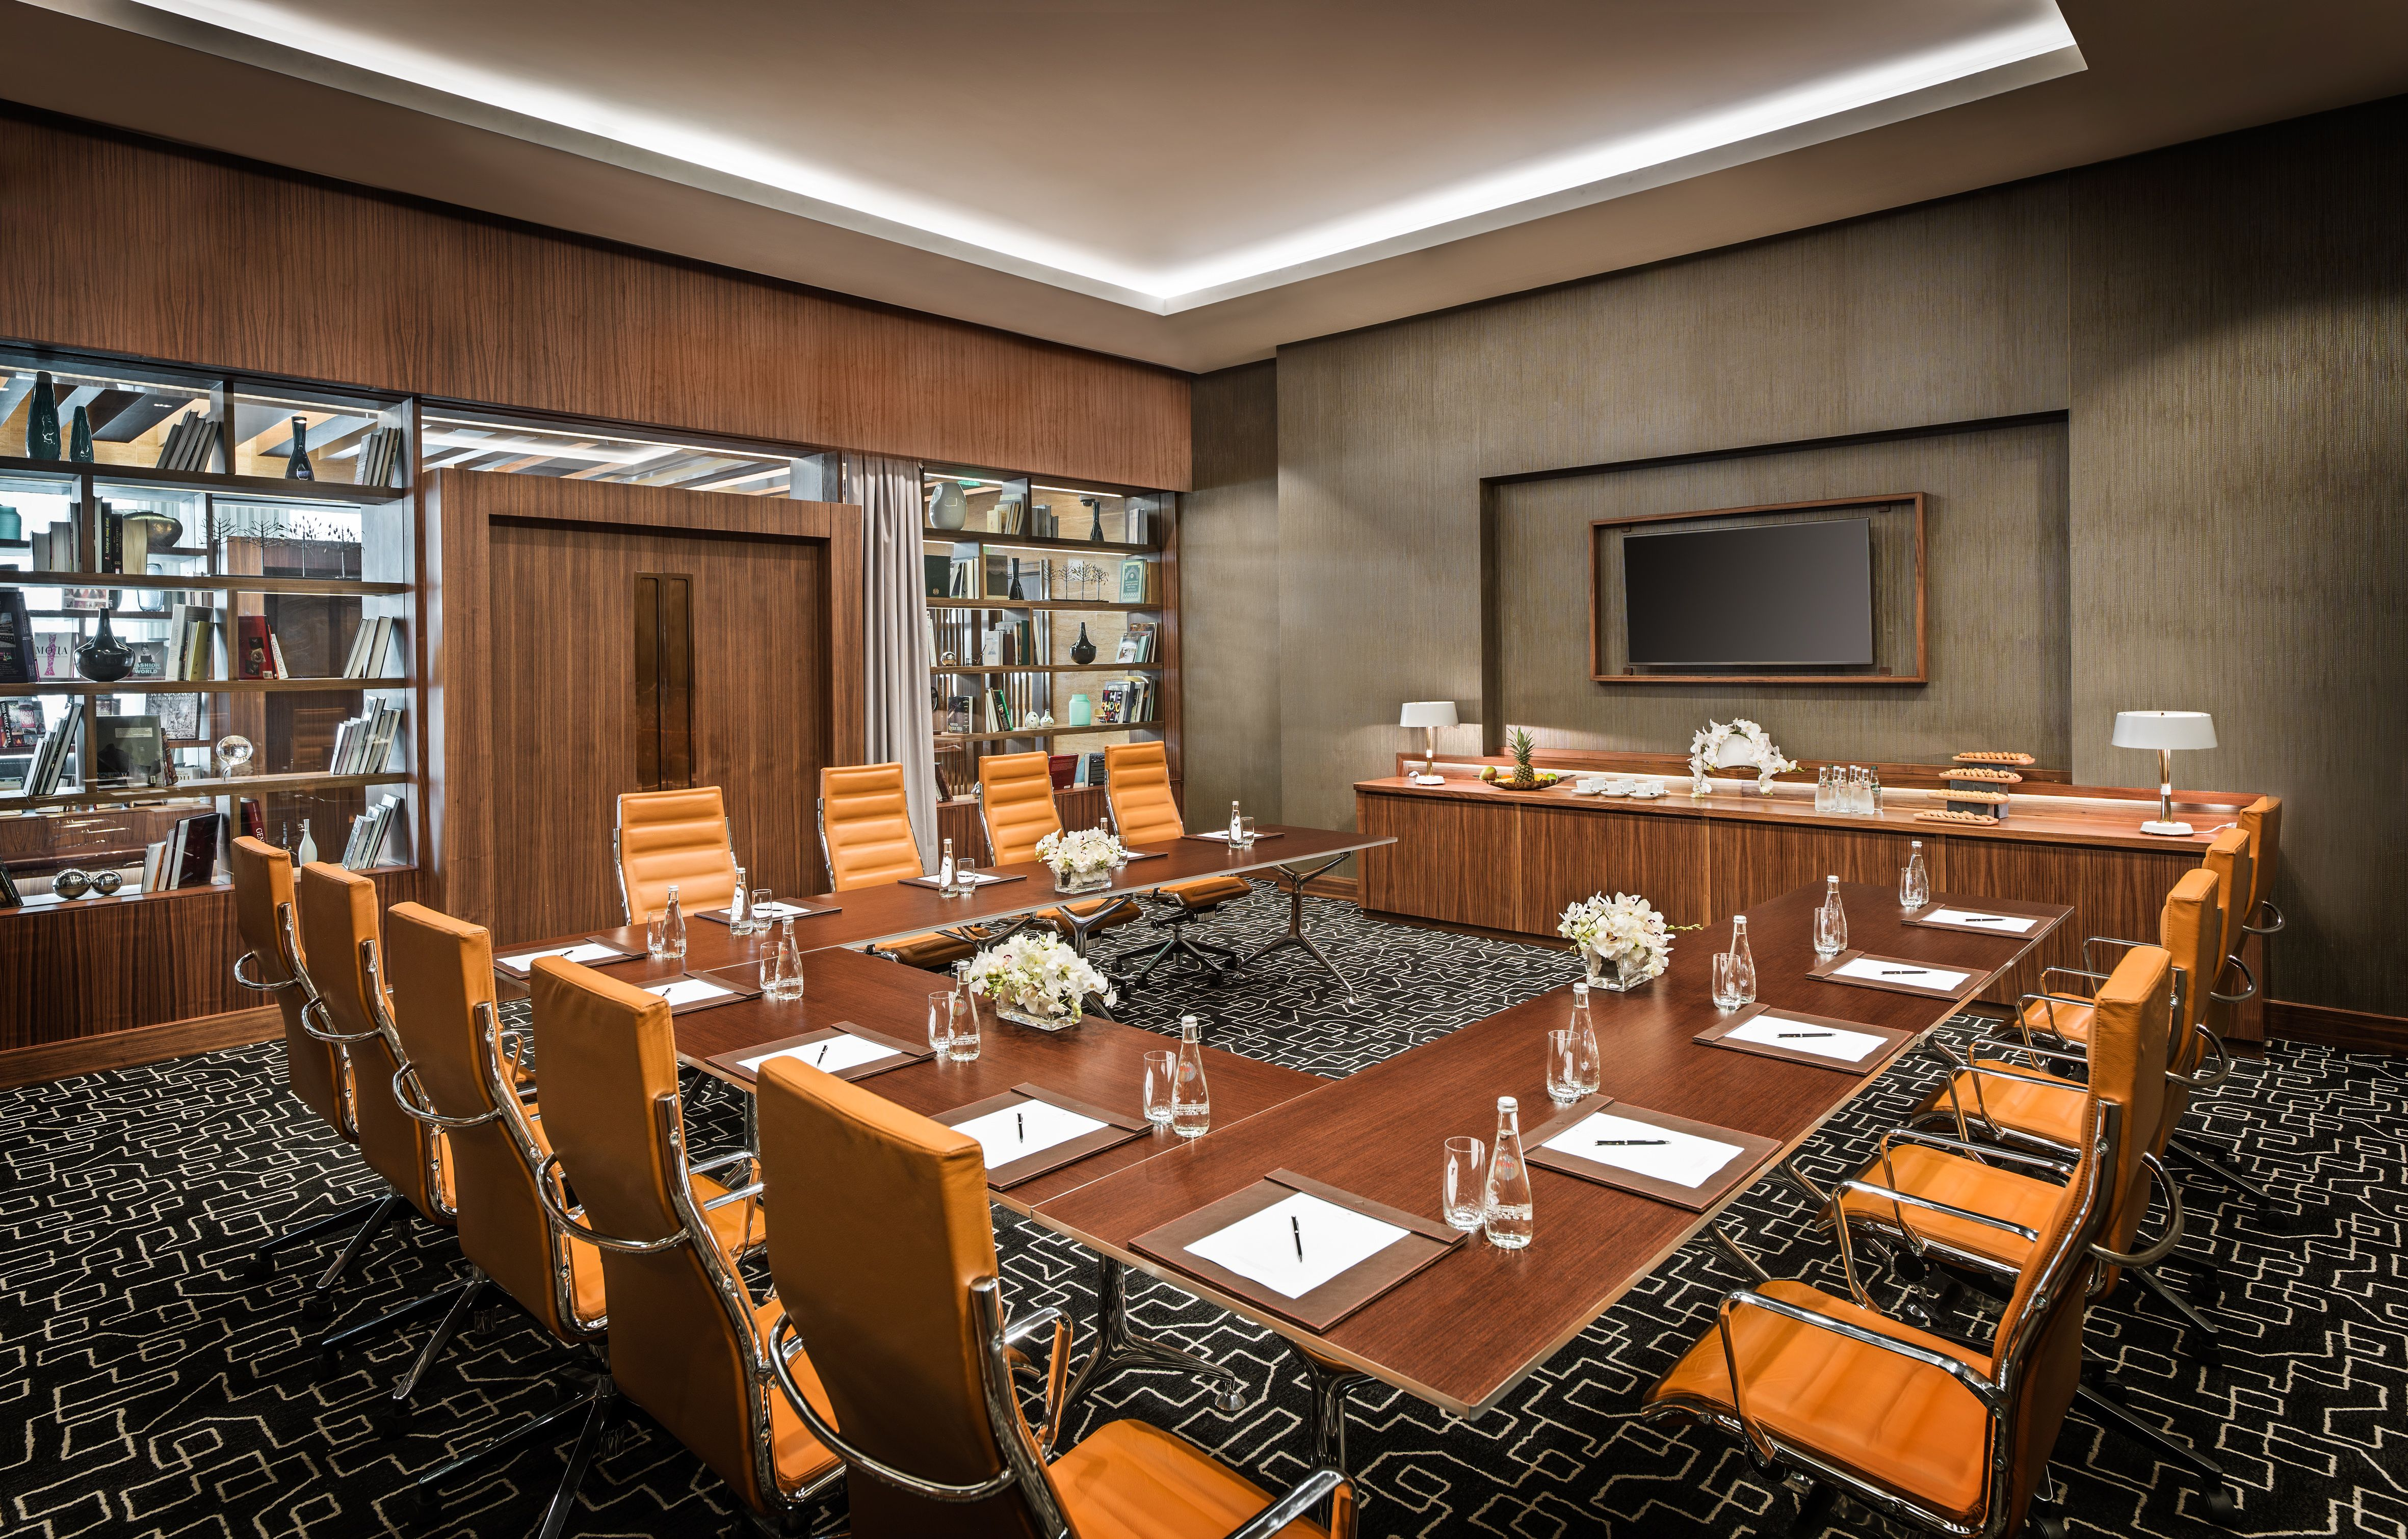 Intourist Hotel Baku Is Delighted To Present Its Elegant And Stylish Meeting Room 1934 Named After The Year Of The First Meeting Room Hotel Luxury Amenities